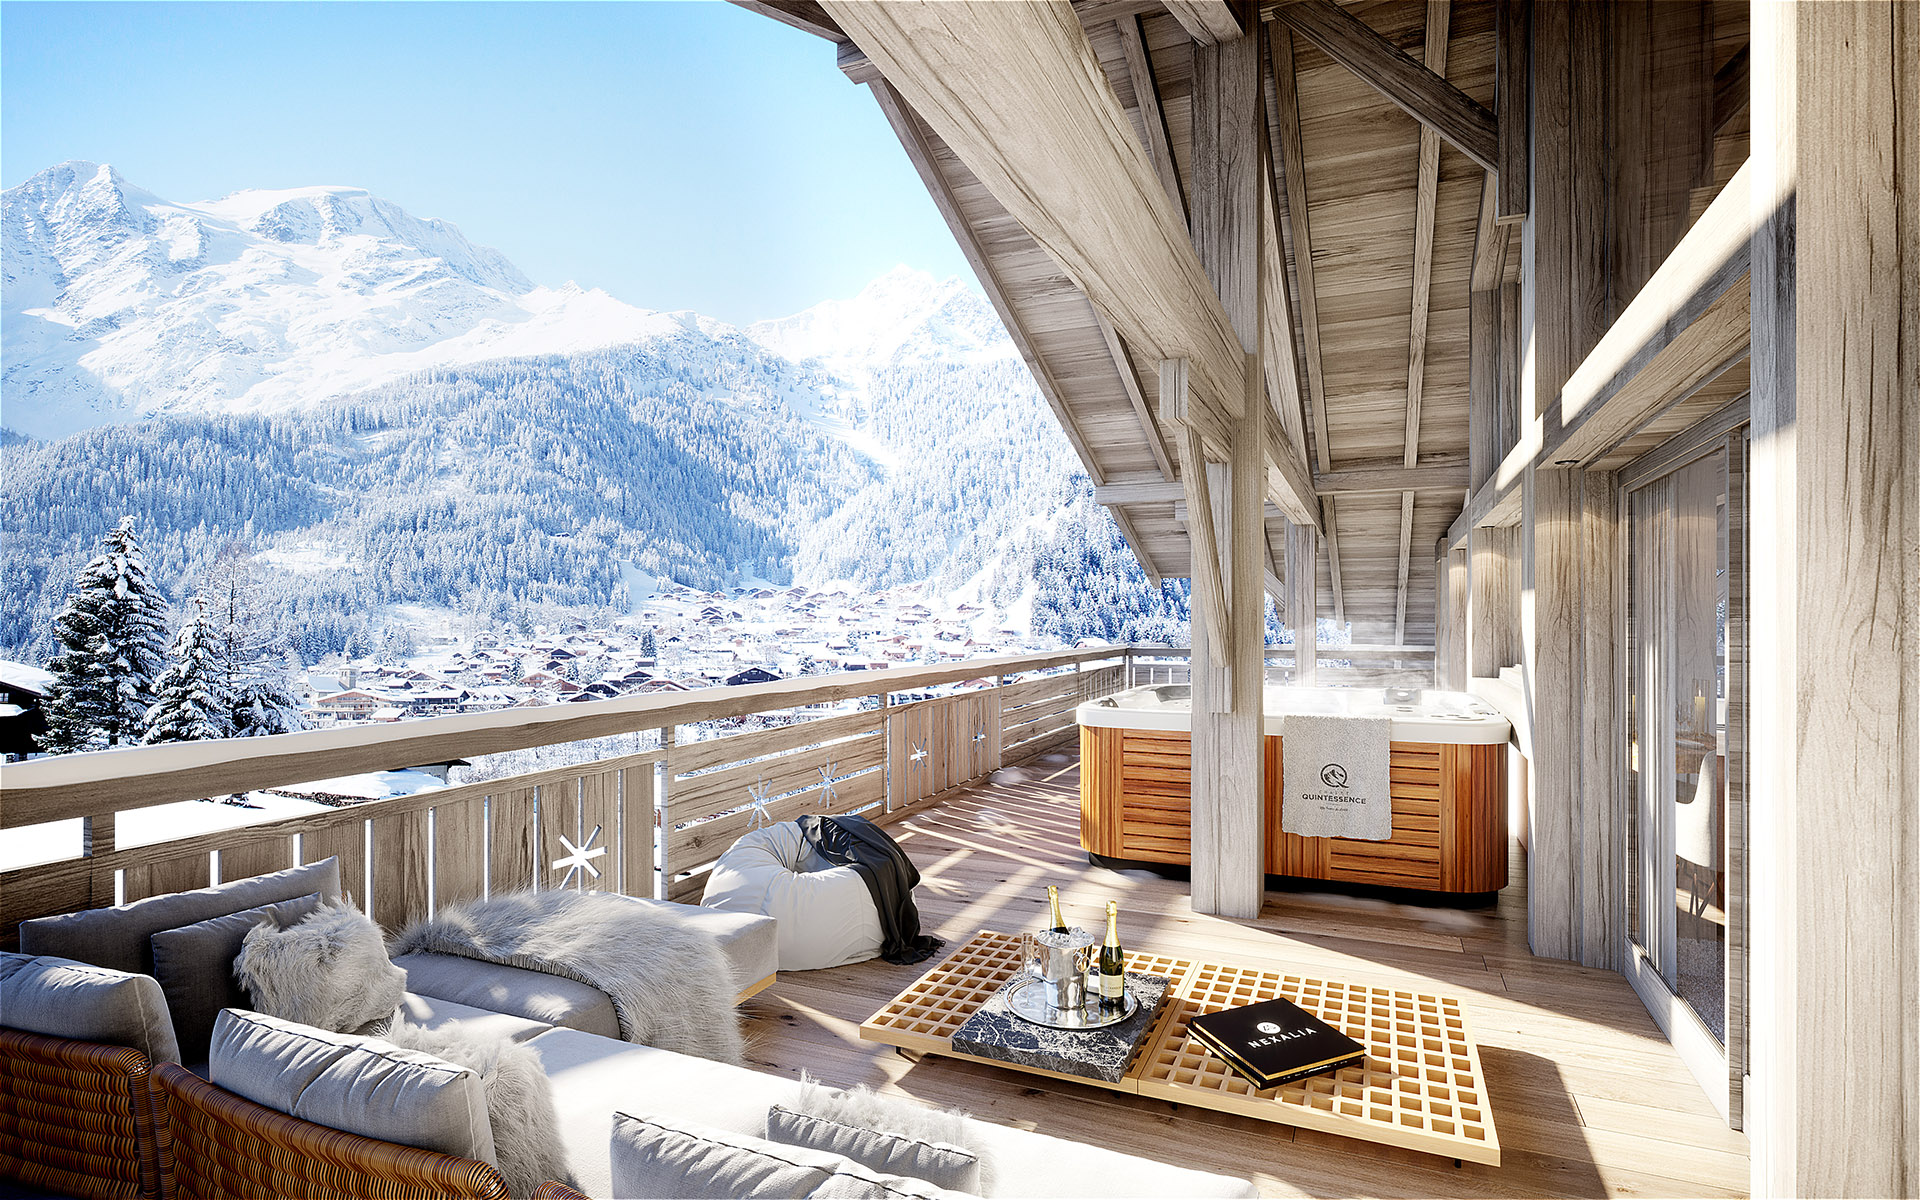 3D computer generated image of a chalet terrace with mountain view and spa